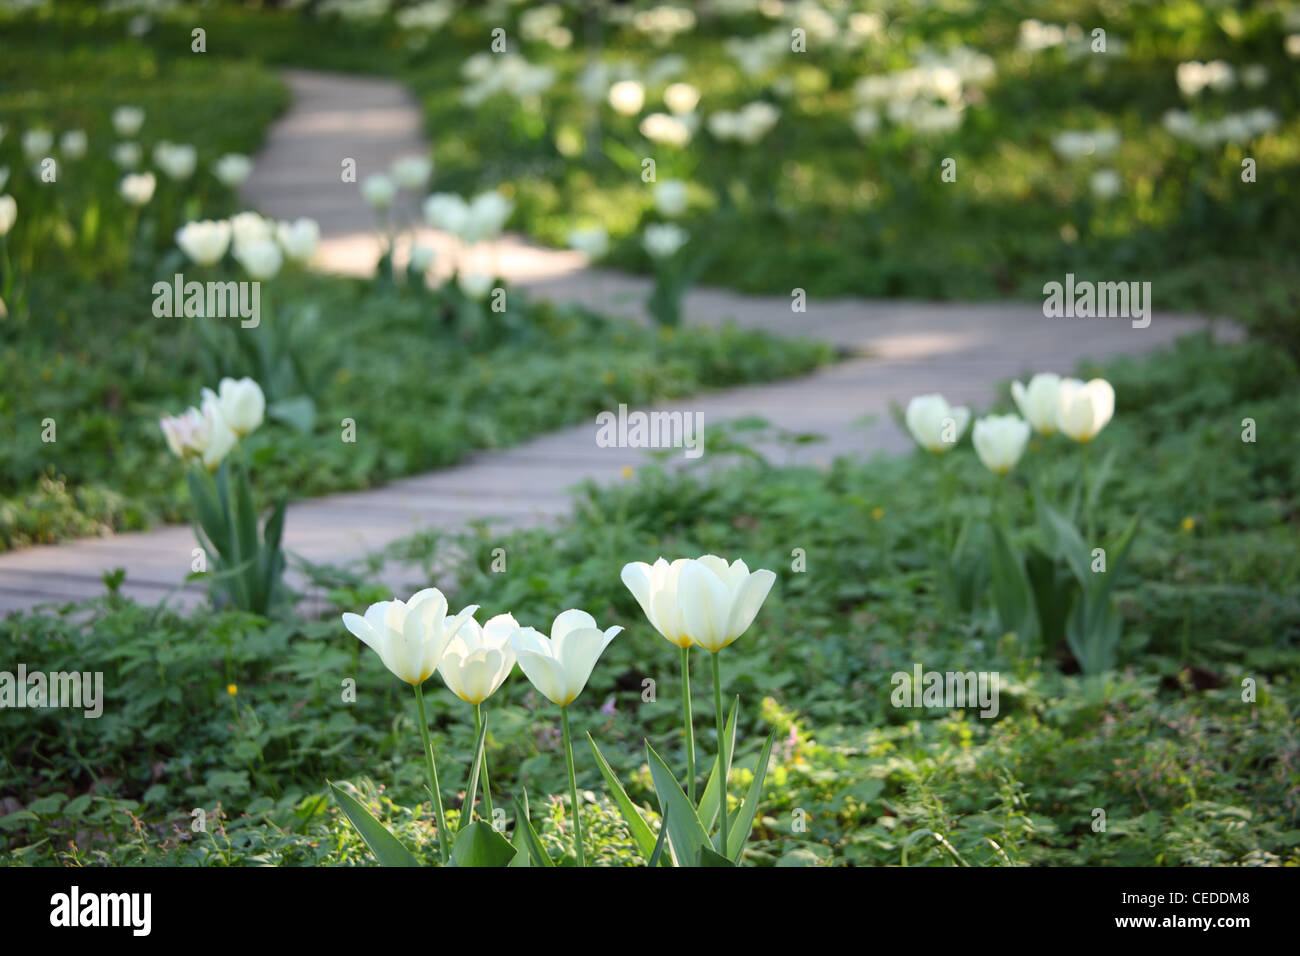 Track in garden among blossoming white tulips - Stock Image